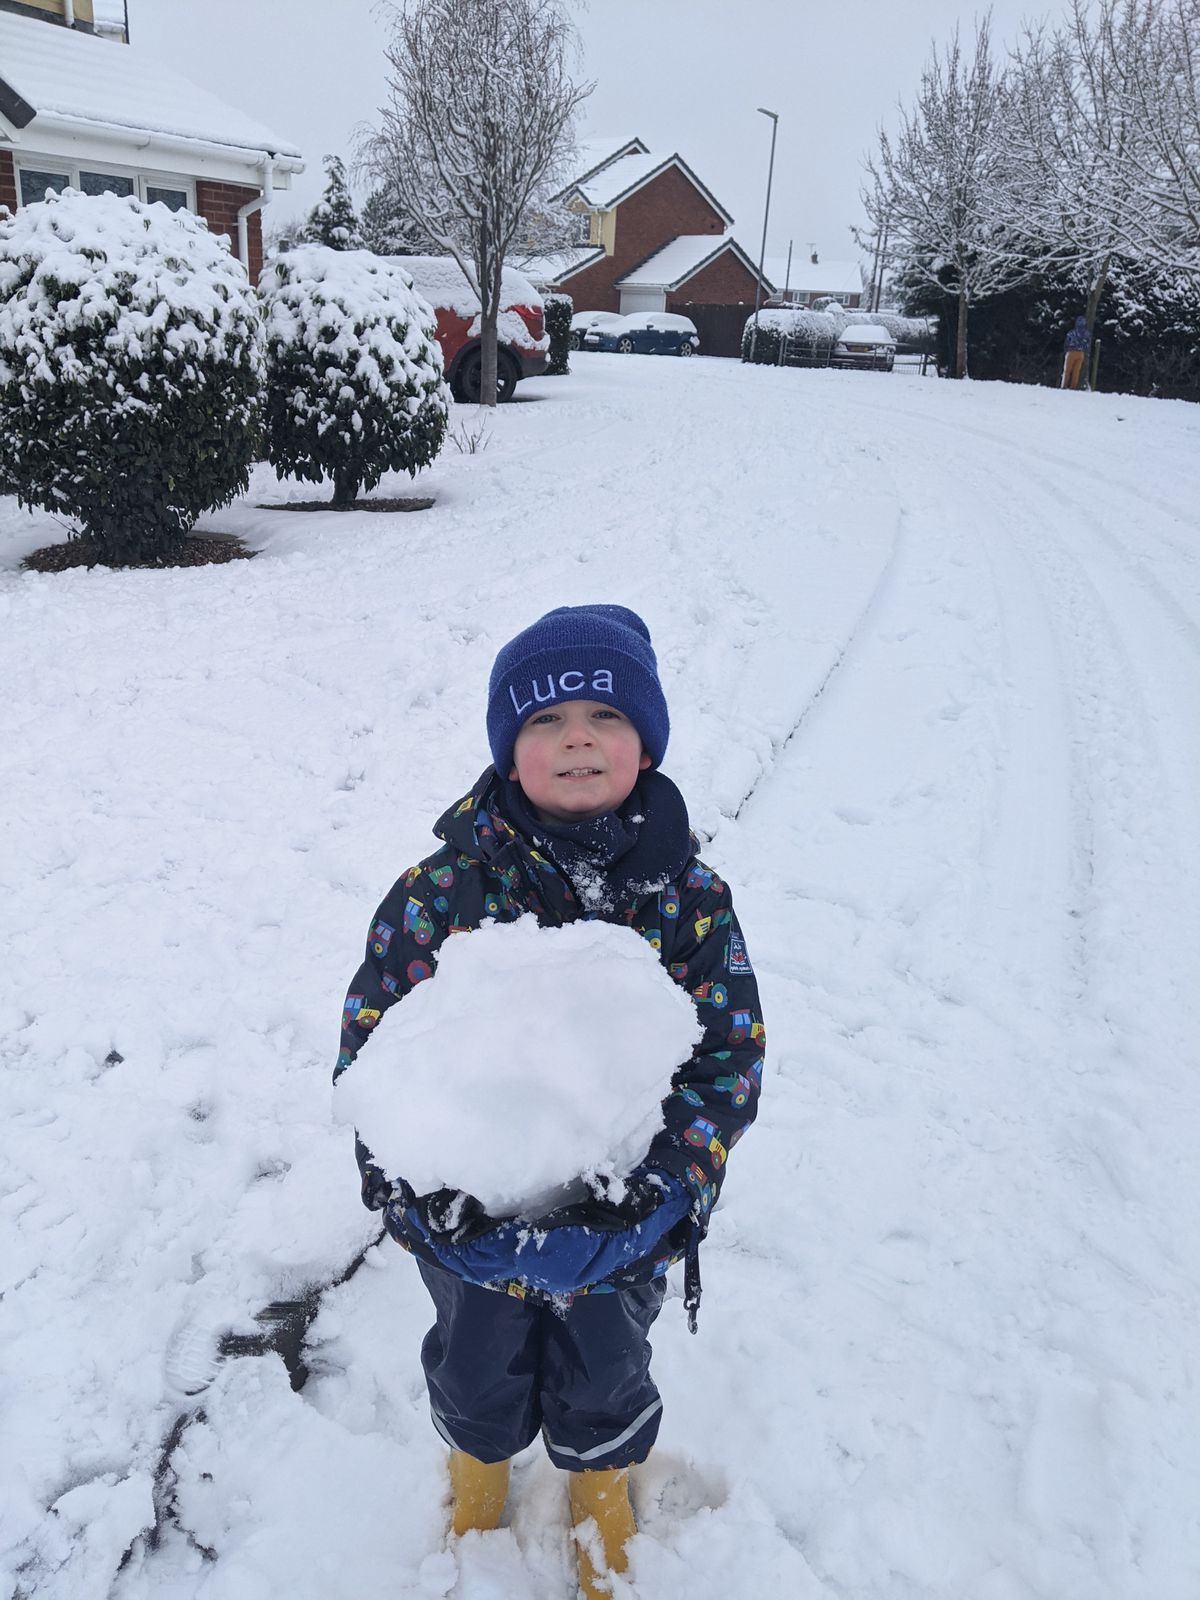 Luca Peter enjoying his first snow in Four Crosses, near Oswestry. Photo: Steve Peter